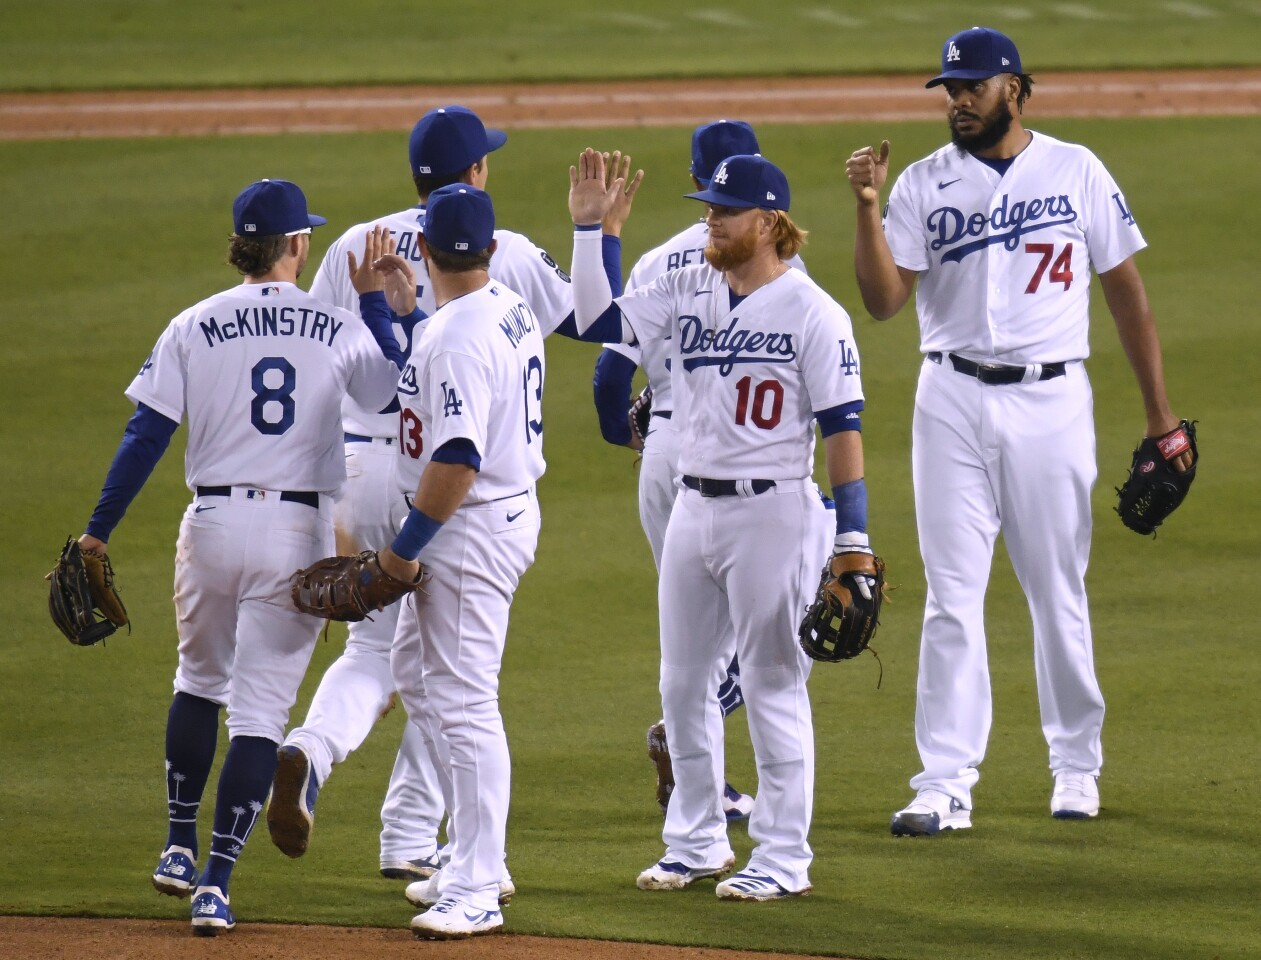 LOS ANGELES, CALIFORNIA - APRIL 14: Justin Turner #10 and Kenley Jansen #74 of the Los Angeles Dodgers celebrate a 4-2 win over the Colorado Rockies with teammates at Dodger Stadium on April 14, 2021 in Los Angeles, California. (Photo by Harry How/Getty Images)